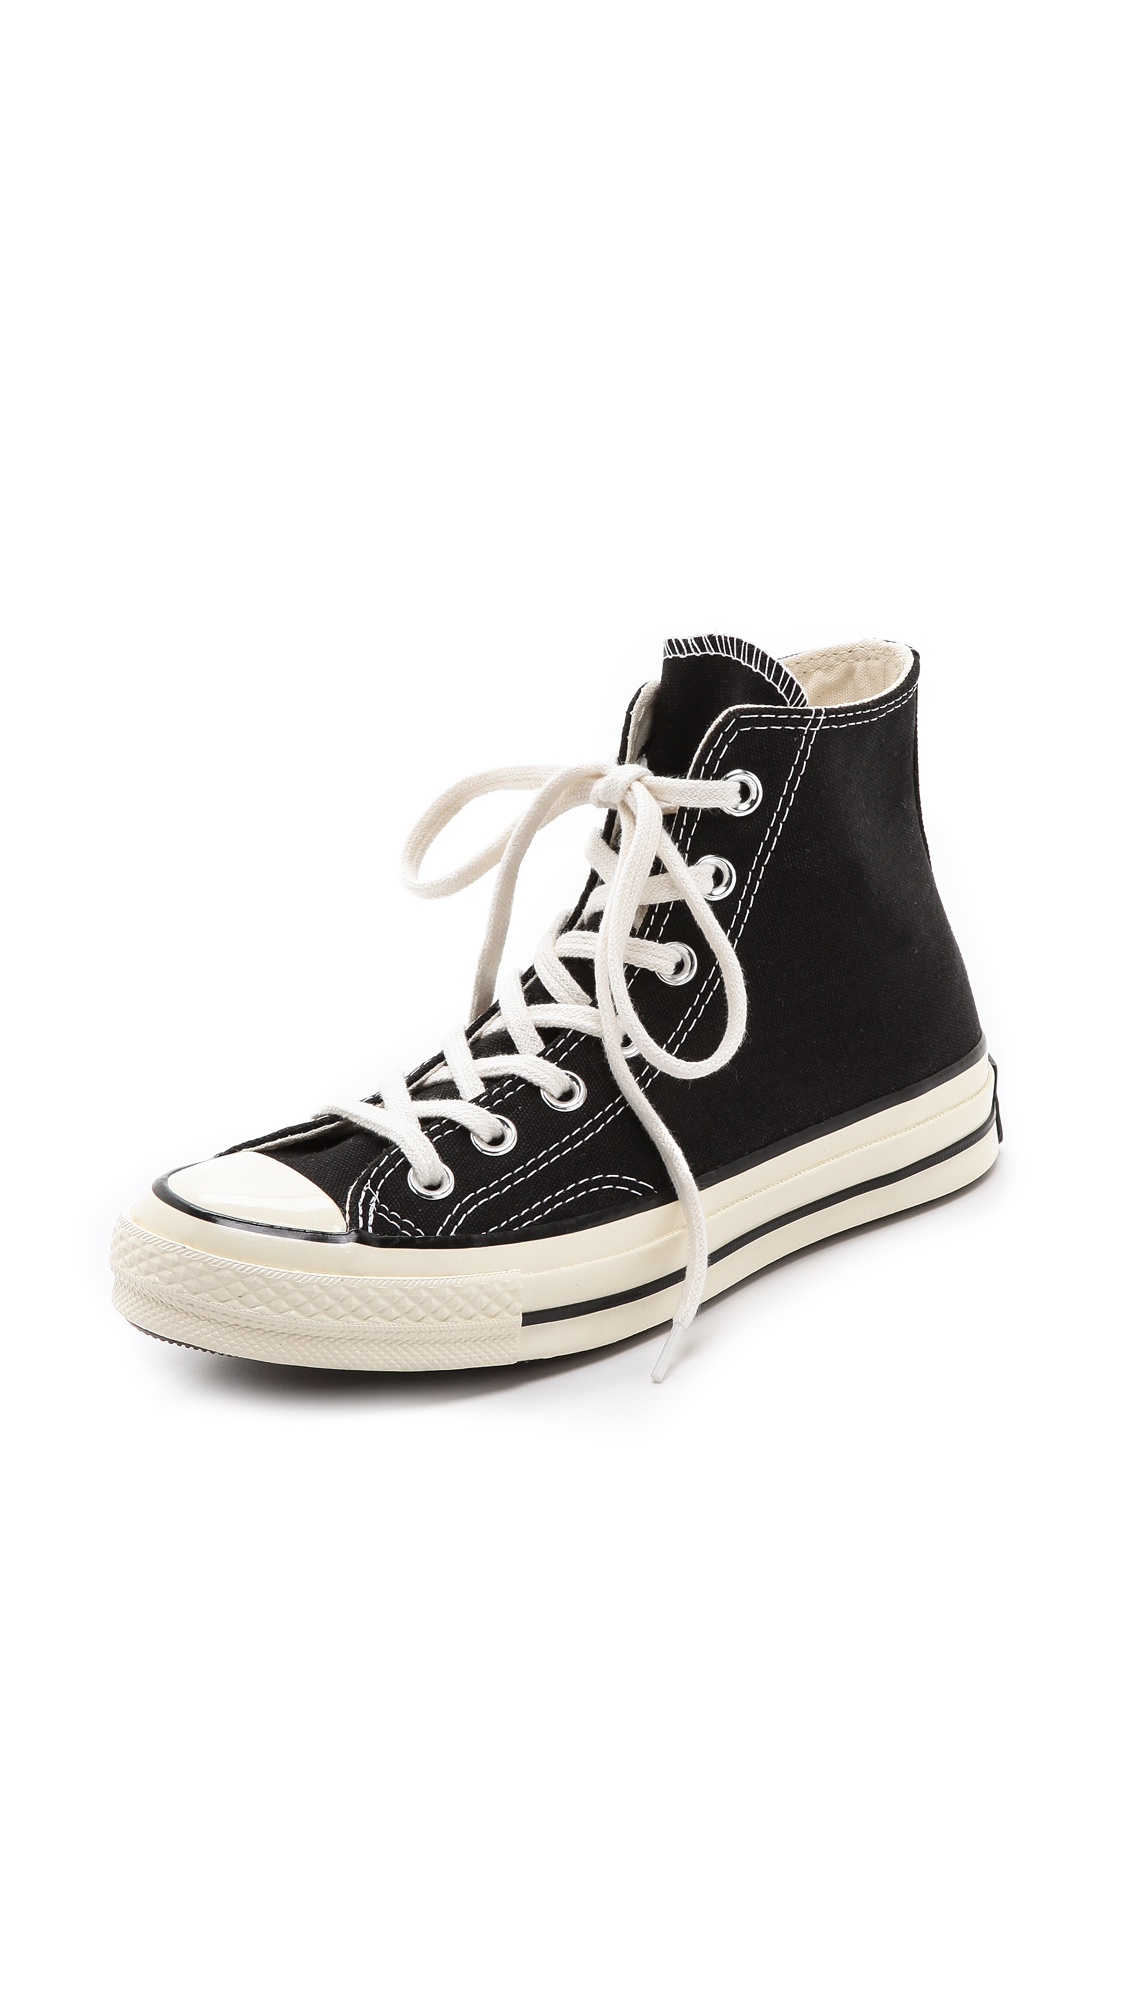 A step above the rest, high top sneakers from luxury shoe makers give special attention to detail in shoes like these. Crafted out of strong materials such as leather, pick a pair in jet black to go with anything in a closet.